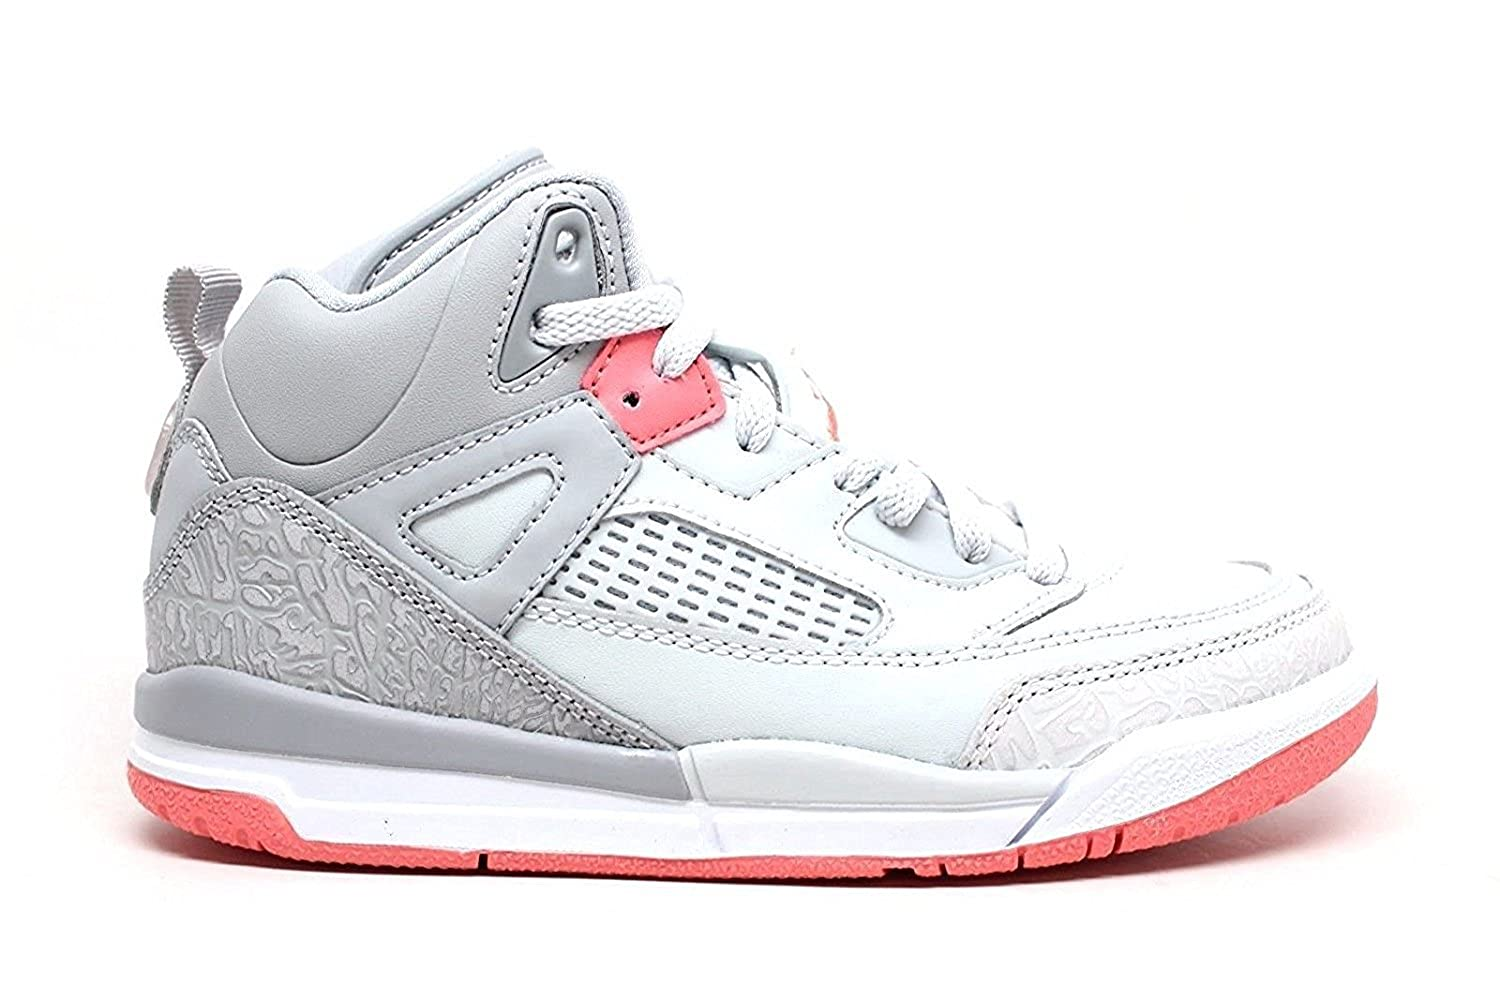 the latest 23895 1c8c6 Jordan Spizike Wolf Grey/Sun Blush (Little Kid) (11 M US Little Kid)